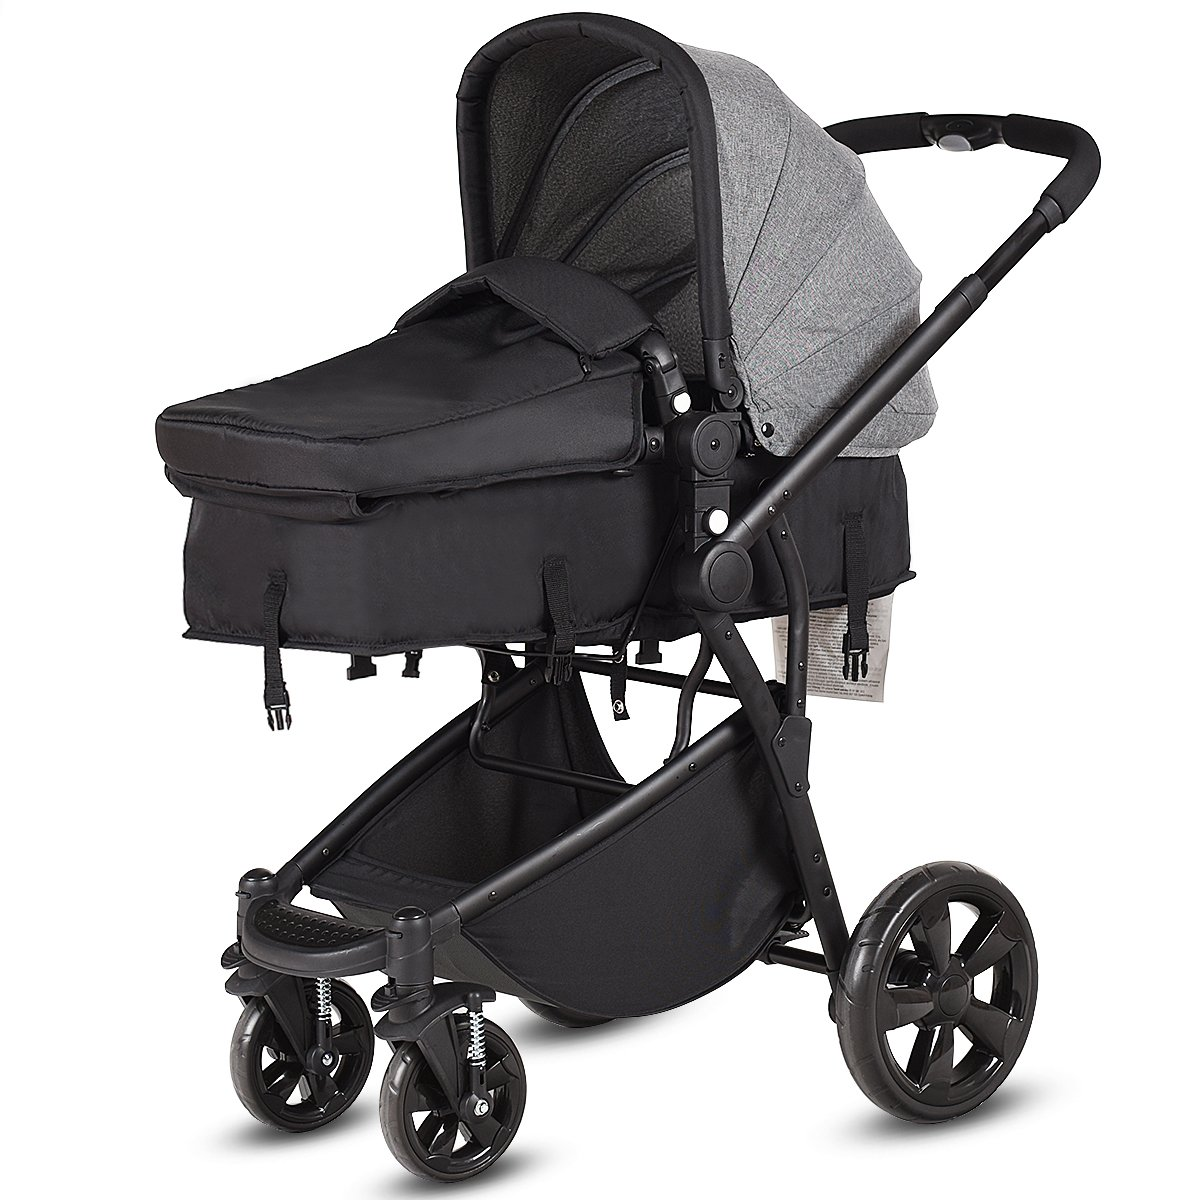 Costzon Infant Stroller, 2-in-1 Foldable 4-Wheel Baby Toddler Stroller, Convertible Bassinet Reclining Stroller Compact Single Baby Carriage with Adjustable Handlebar and Storage Basket Gray